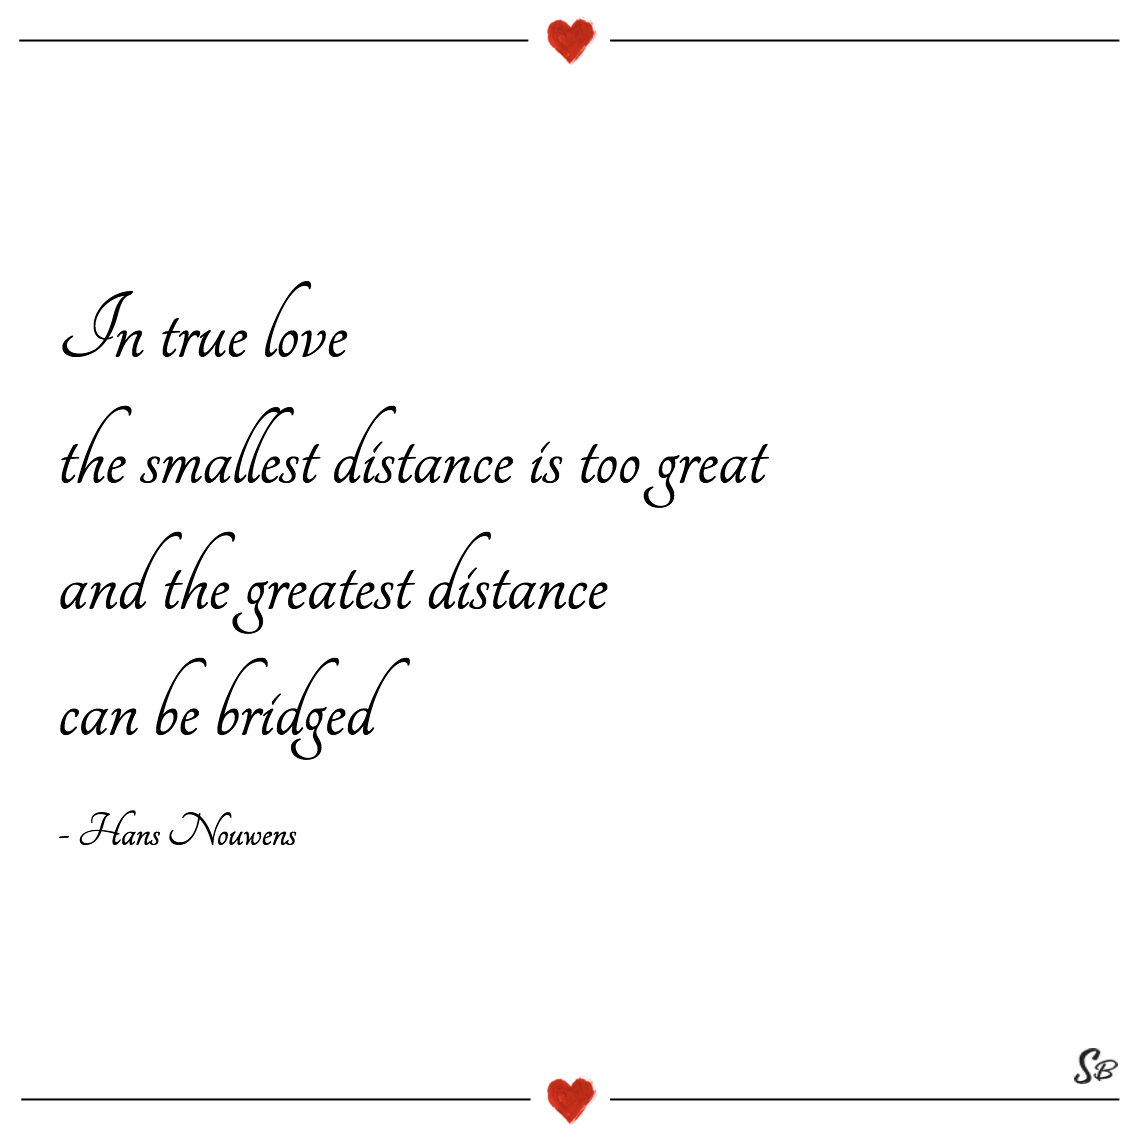 In true love the smallest distance is too great and the greatest distance can be bridged hans nouwens